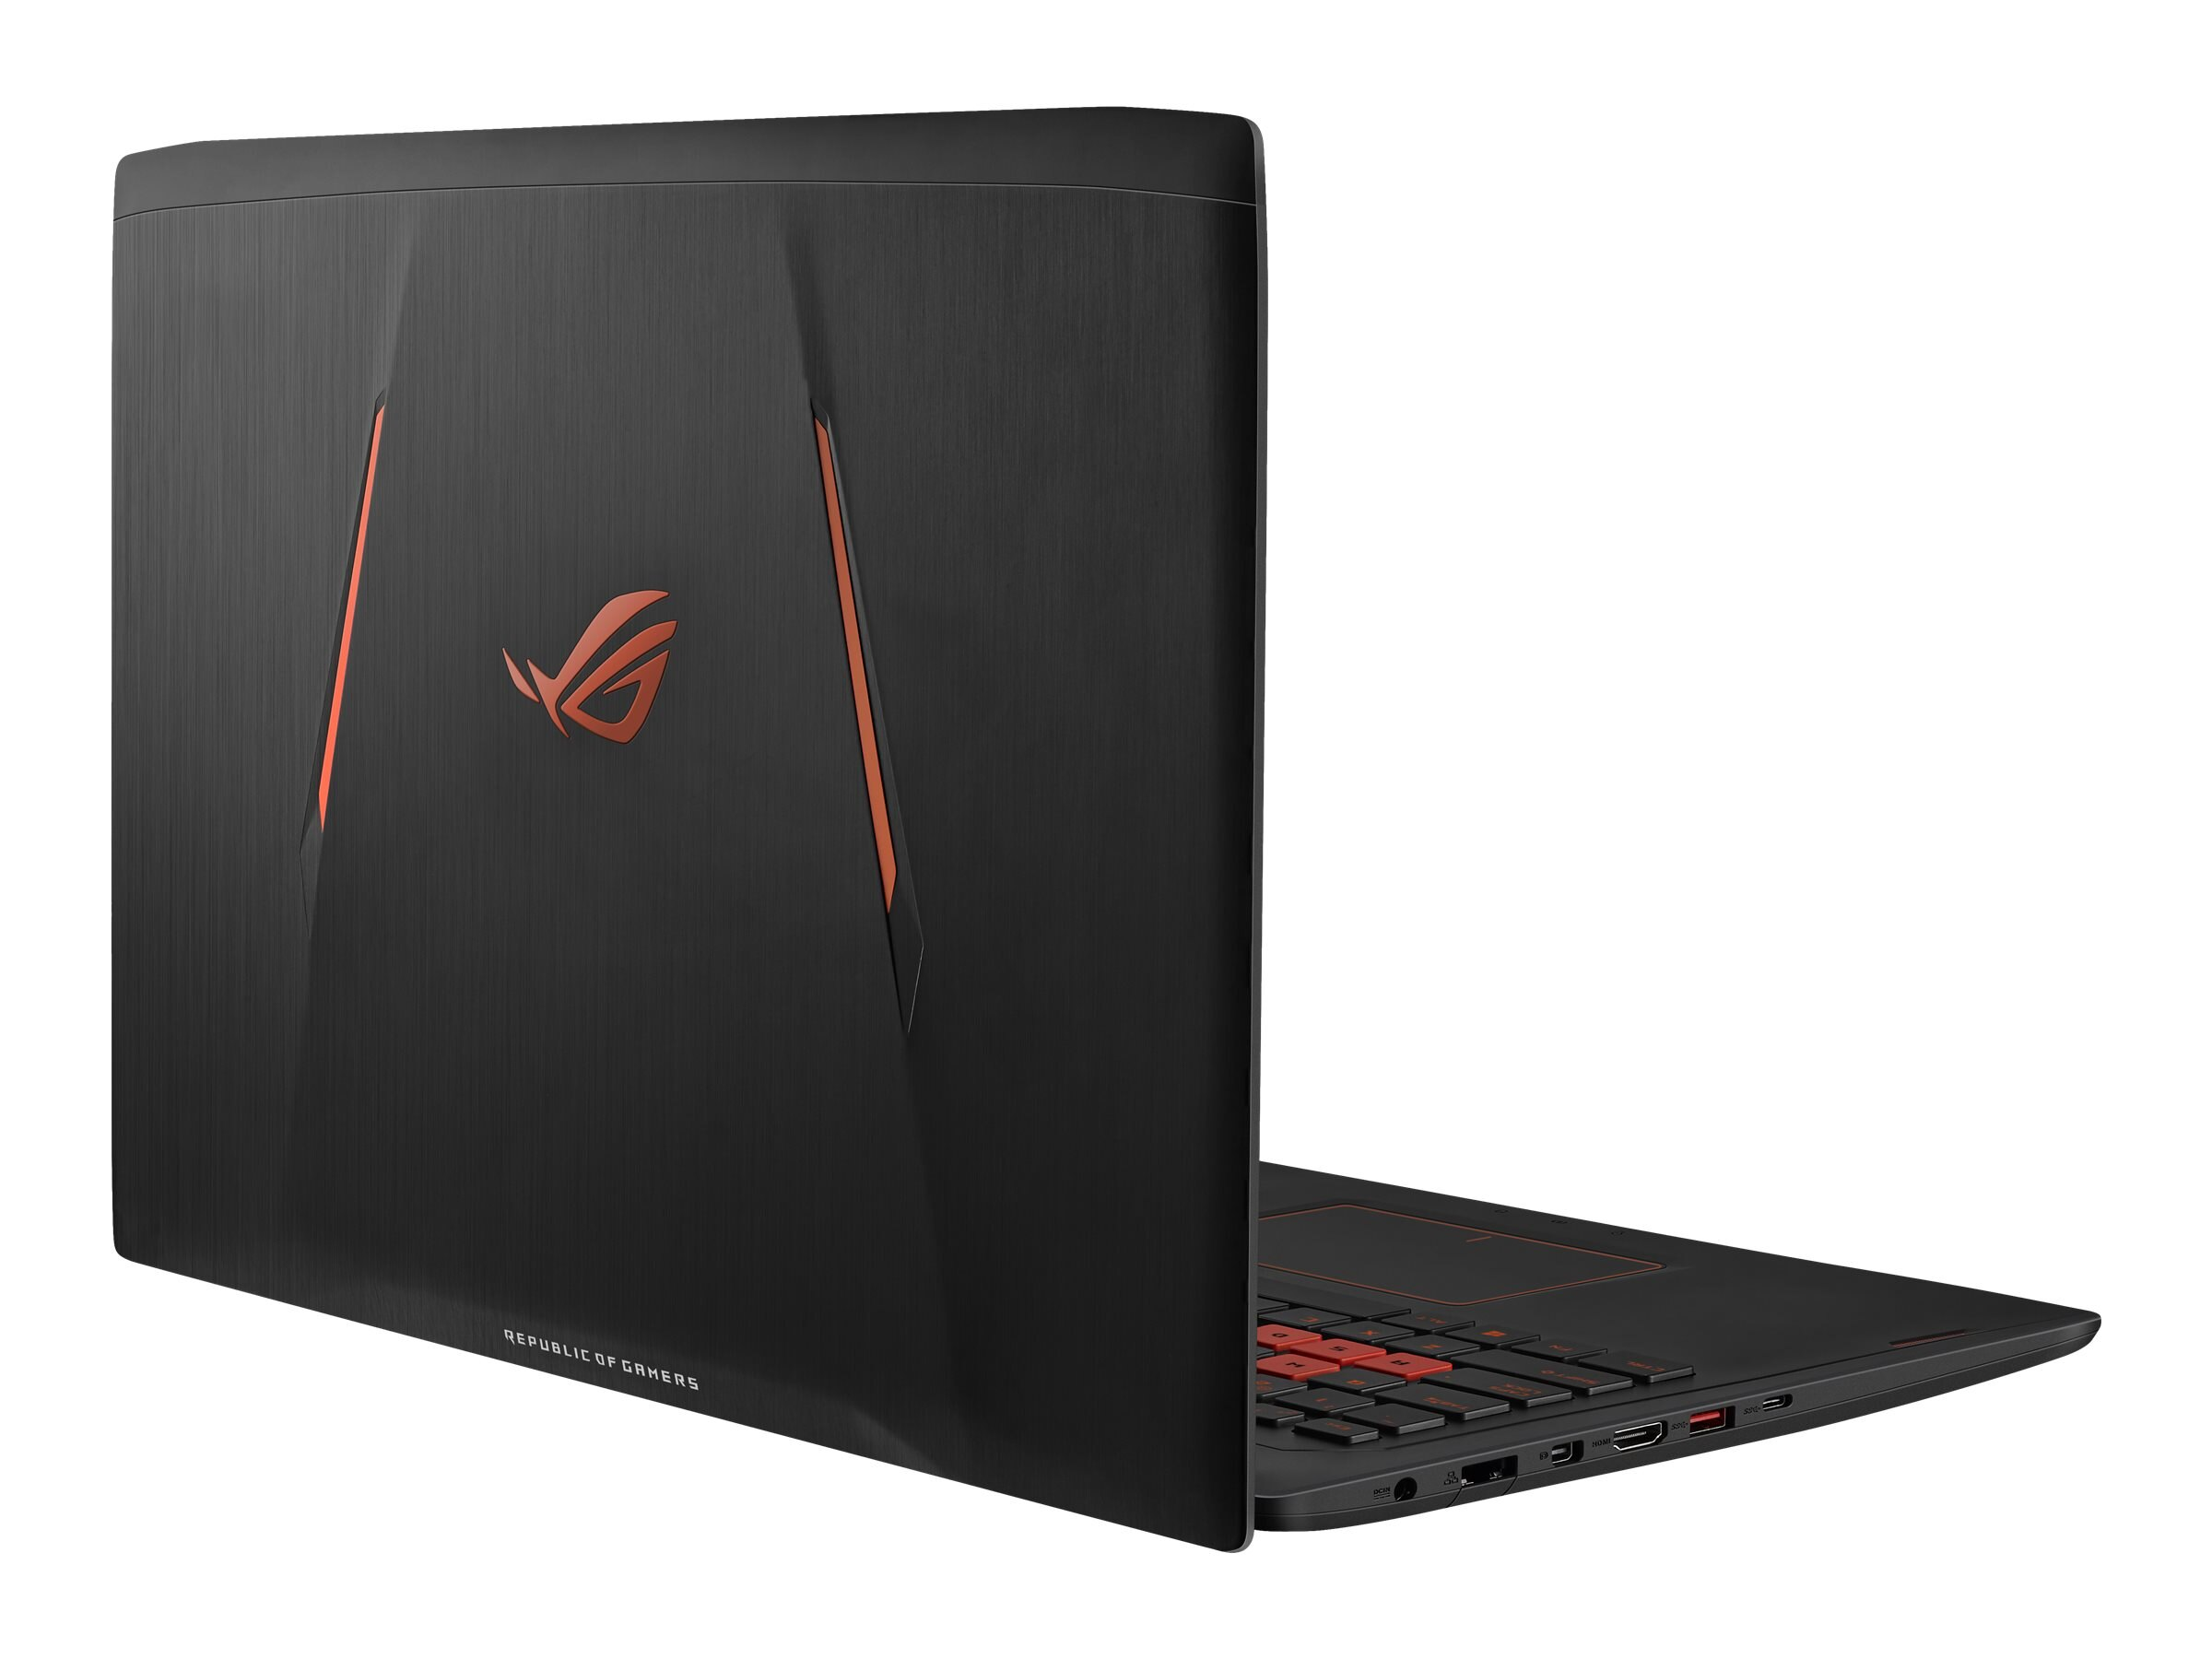 Asus ROG Strix GL502VY-DS74 Core i7-6700HQ 2.6GHz 16GB 1TB+256GB SSD 15.6 W10, GL502VY-DS74